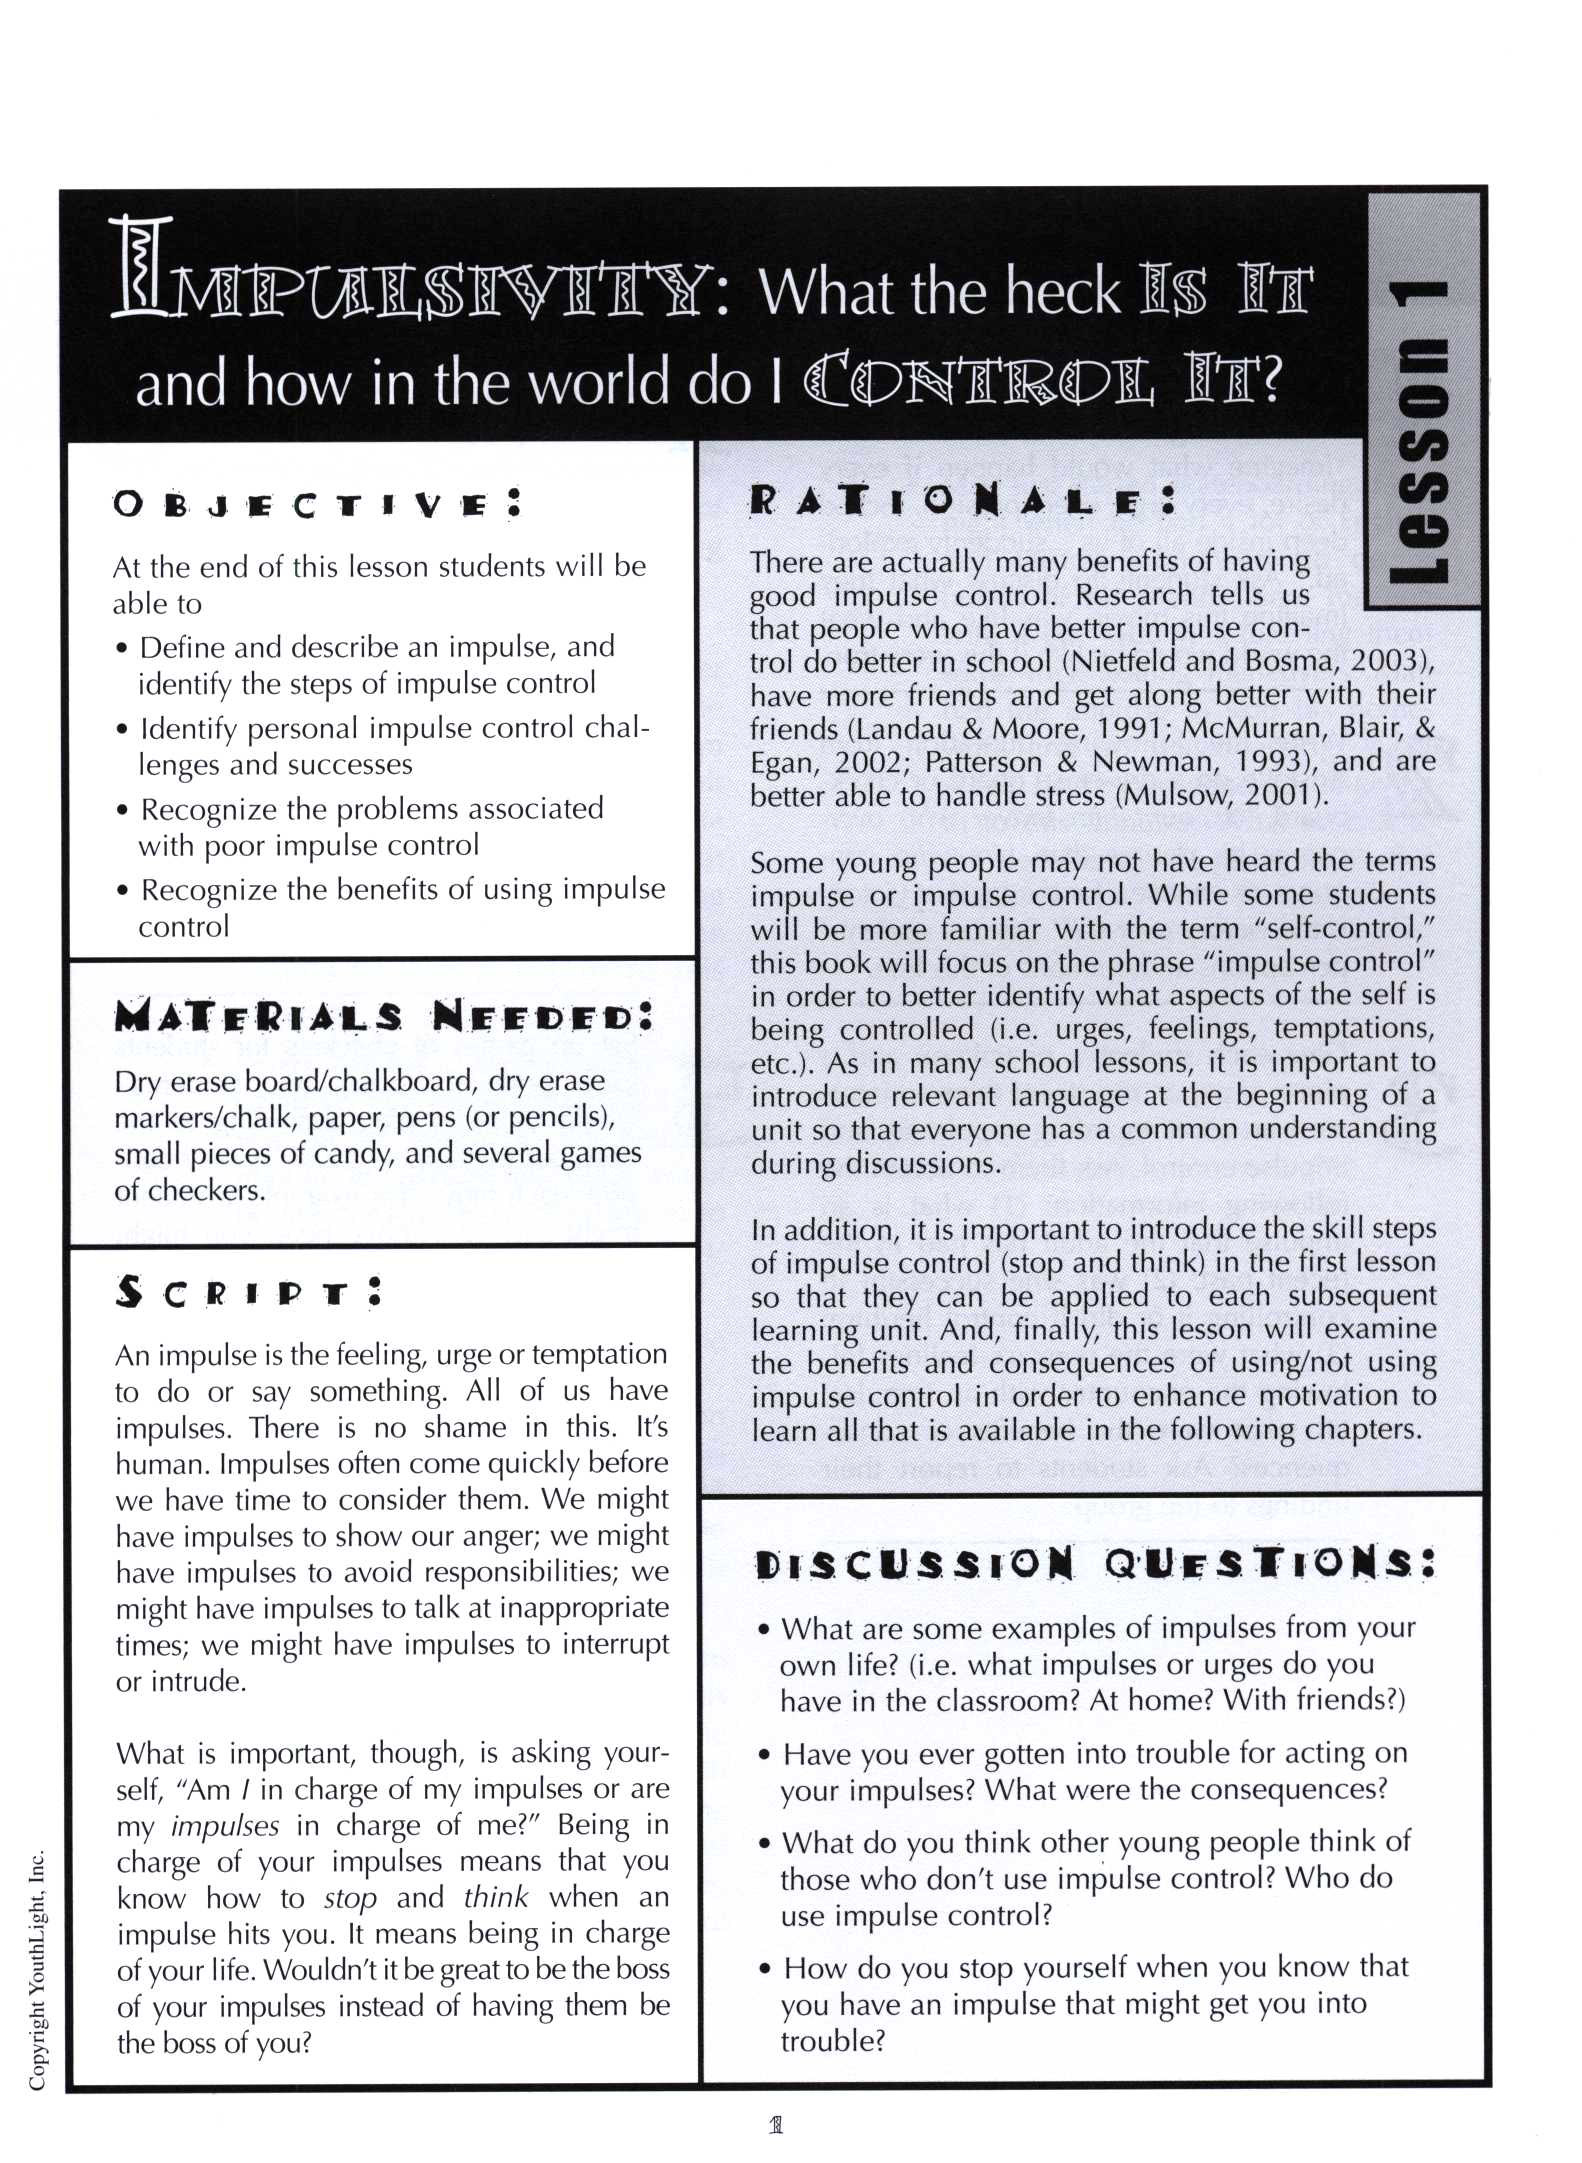 Impulse And Control Activity Sheets For Middle School Students